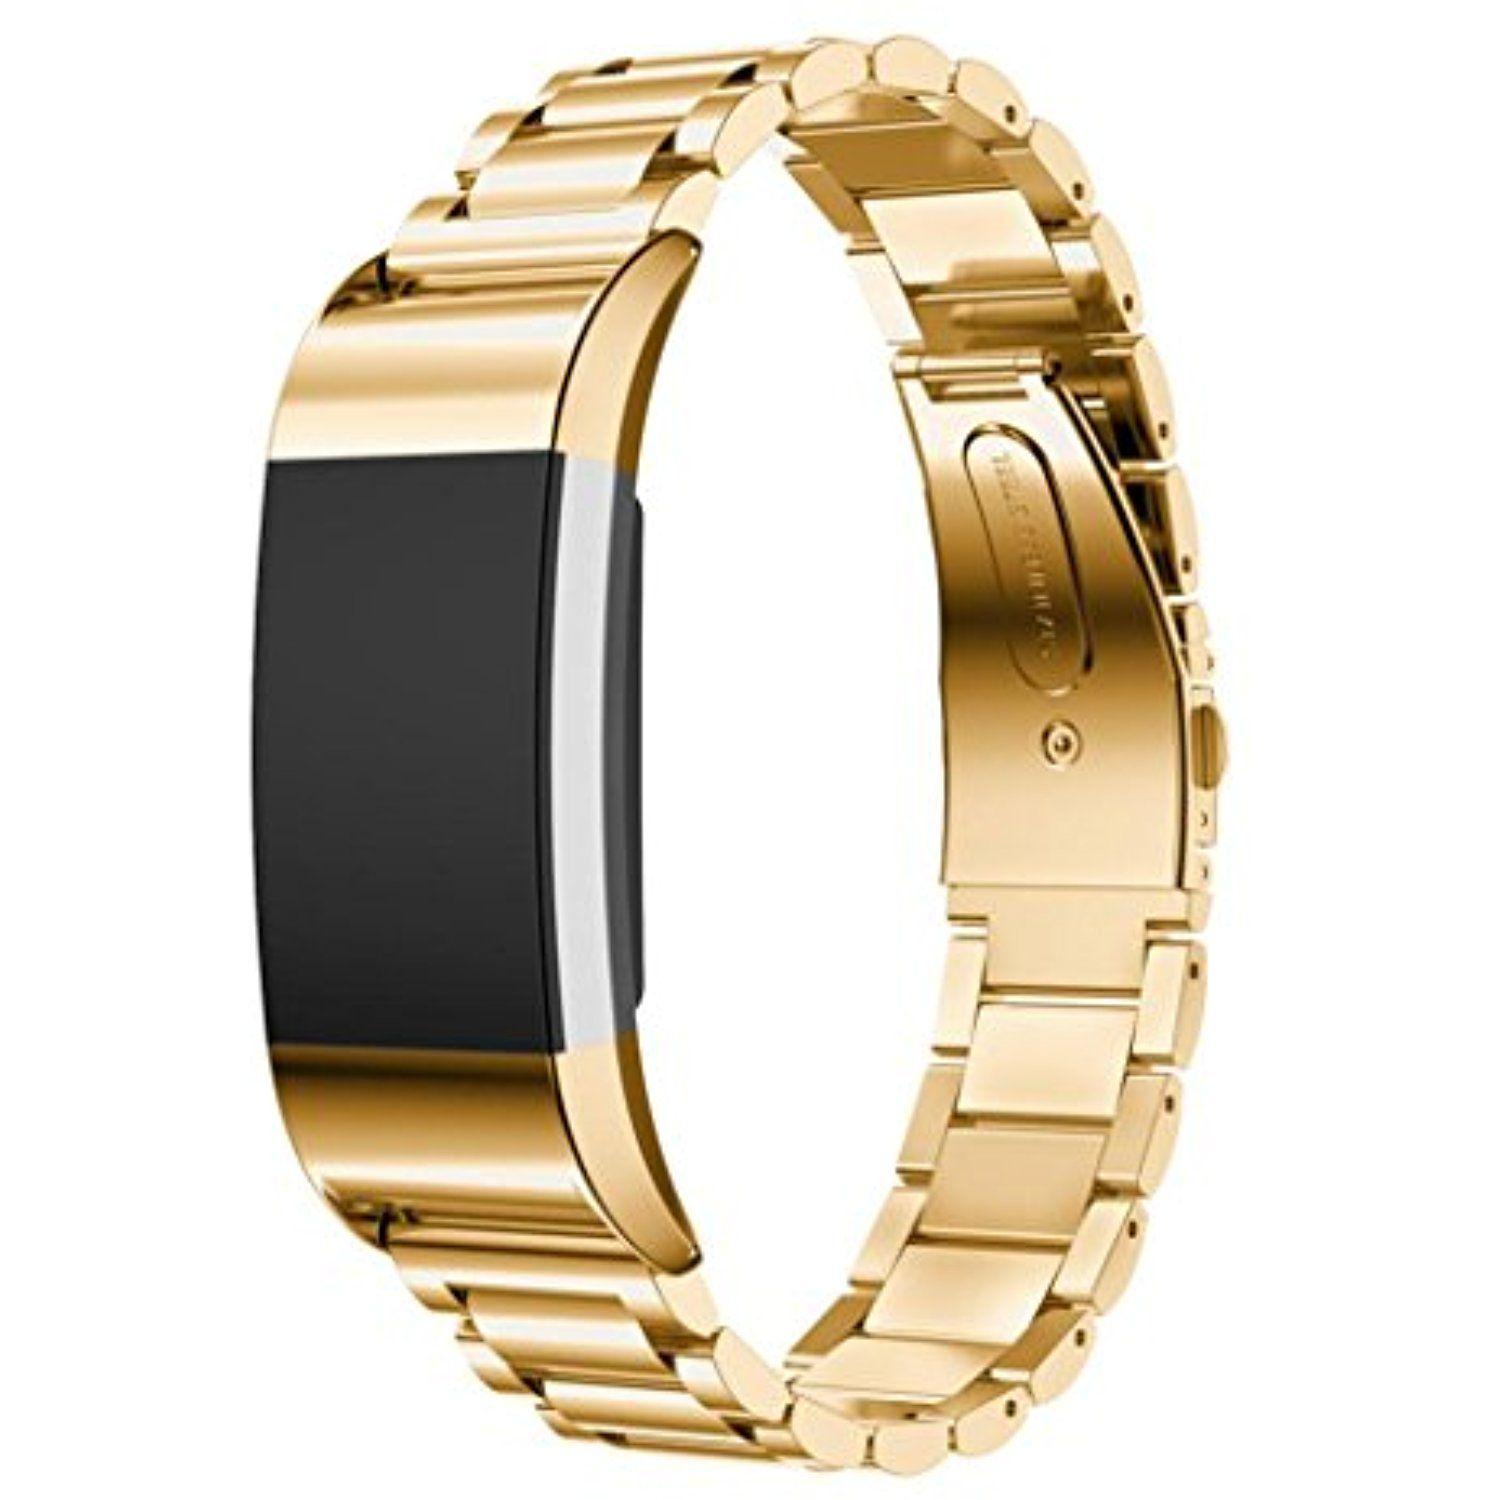 Pumsun band strap for fitbit charge stainless steel bracelet